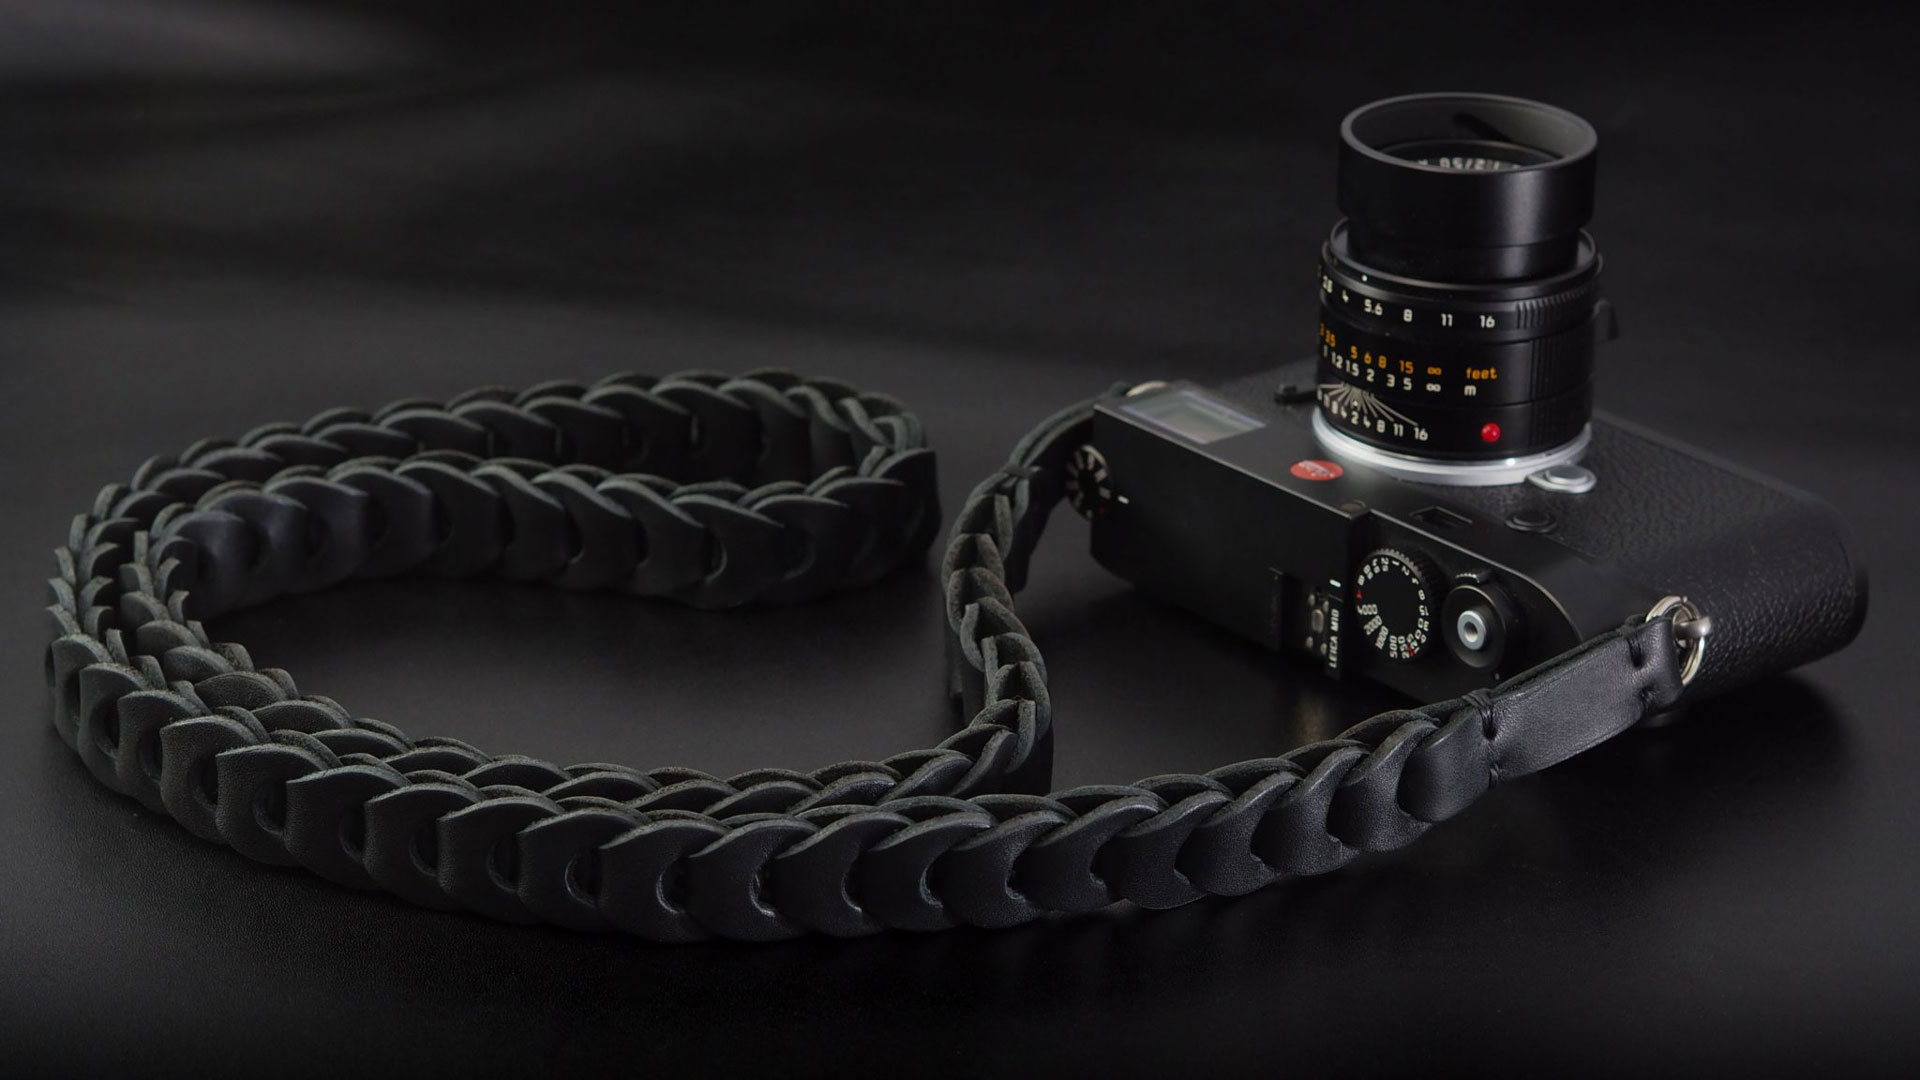 leica m strap, leather camera strap, handmade leather camera strap, vintage camera straps, leica camera strap, handmade camera strap, black camera strap, mirrorless camera strap